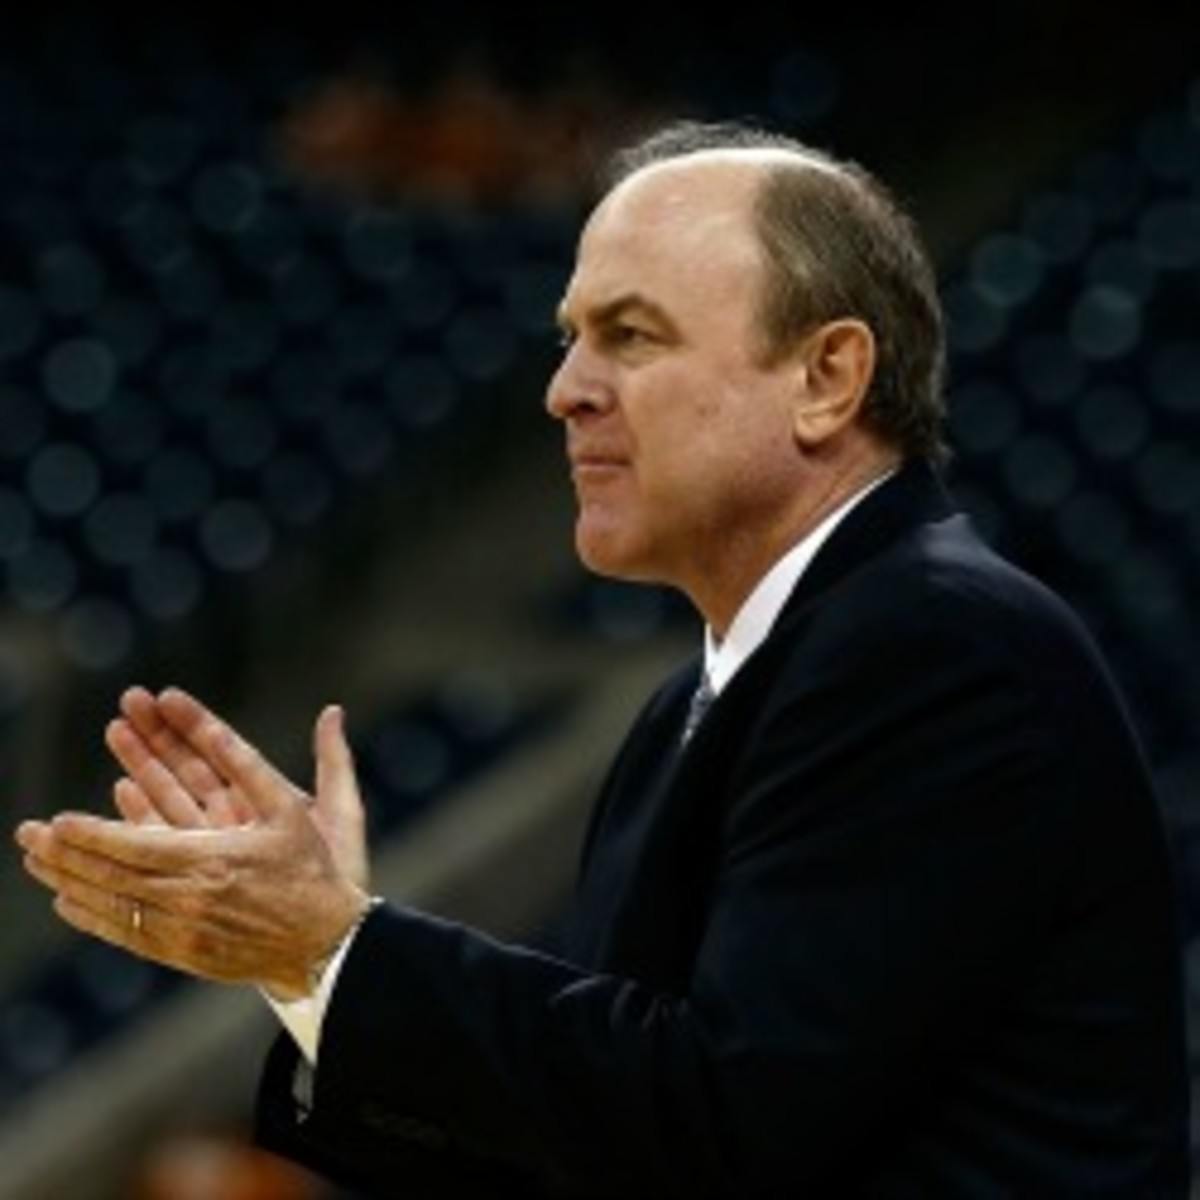 UCLA coach Ben Howland apologized for commenting on freshman star Shabazz Muhammad's draft status. (Scott Halleran/Getty Images)